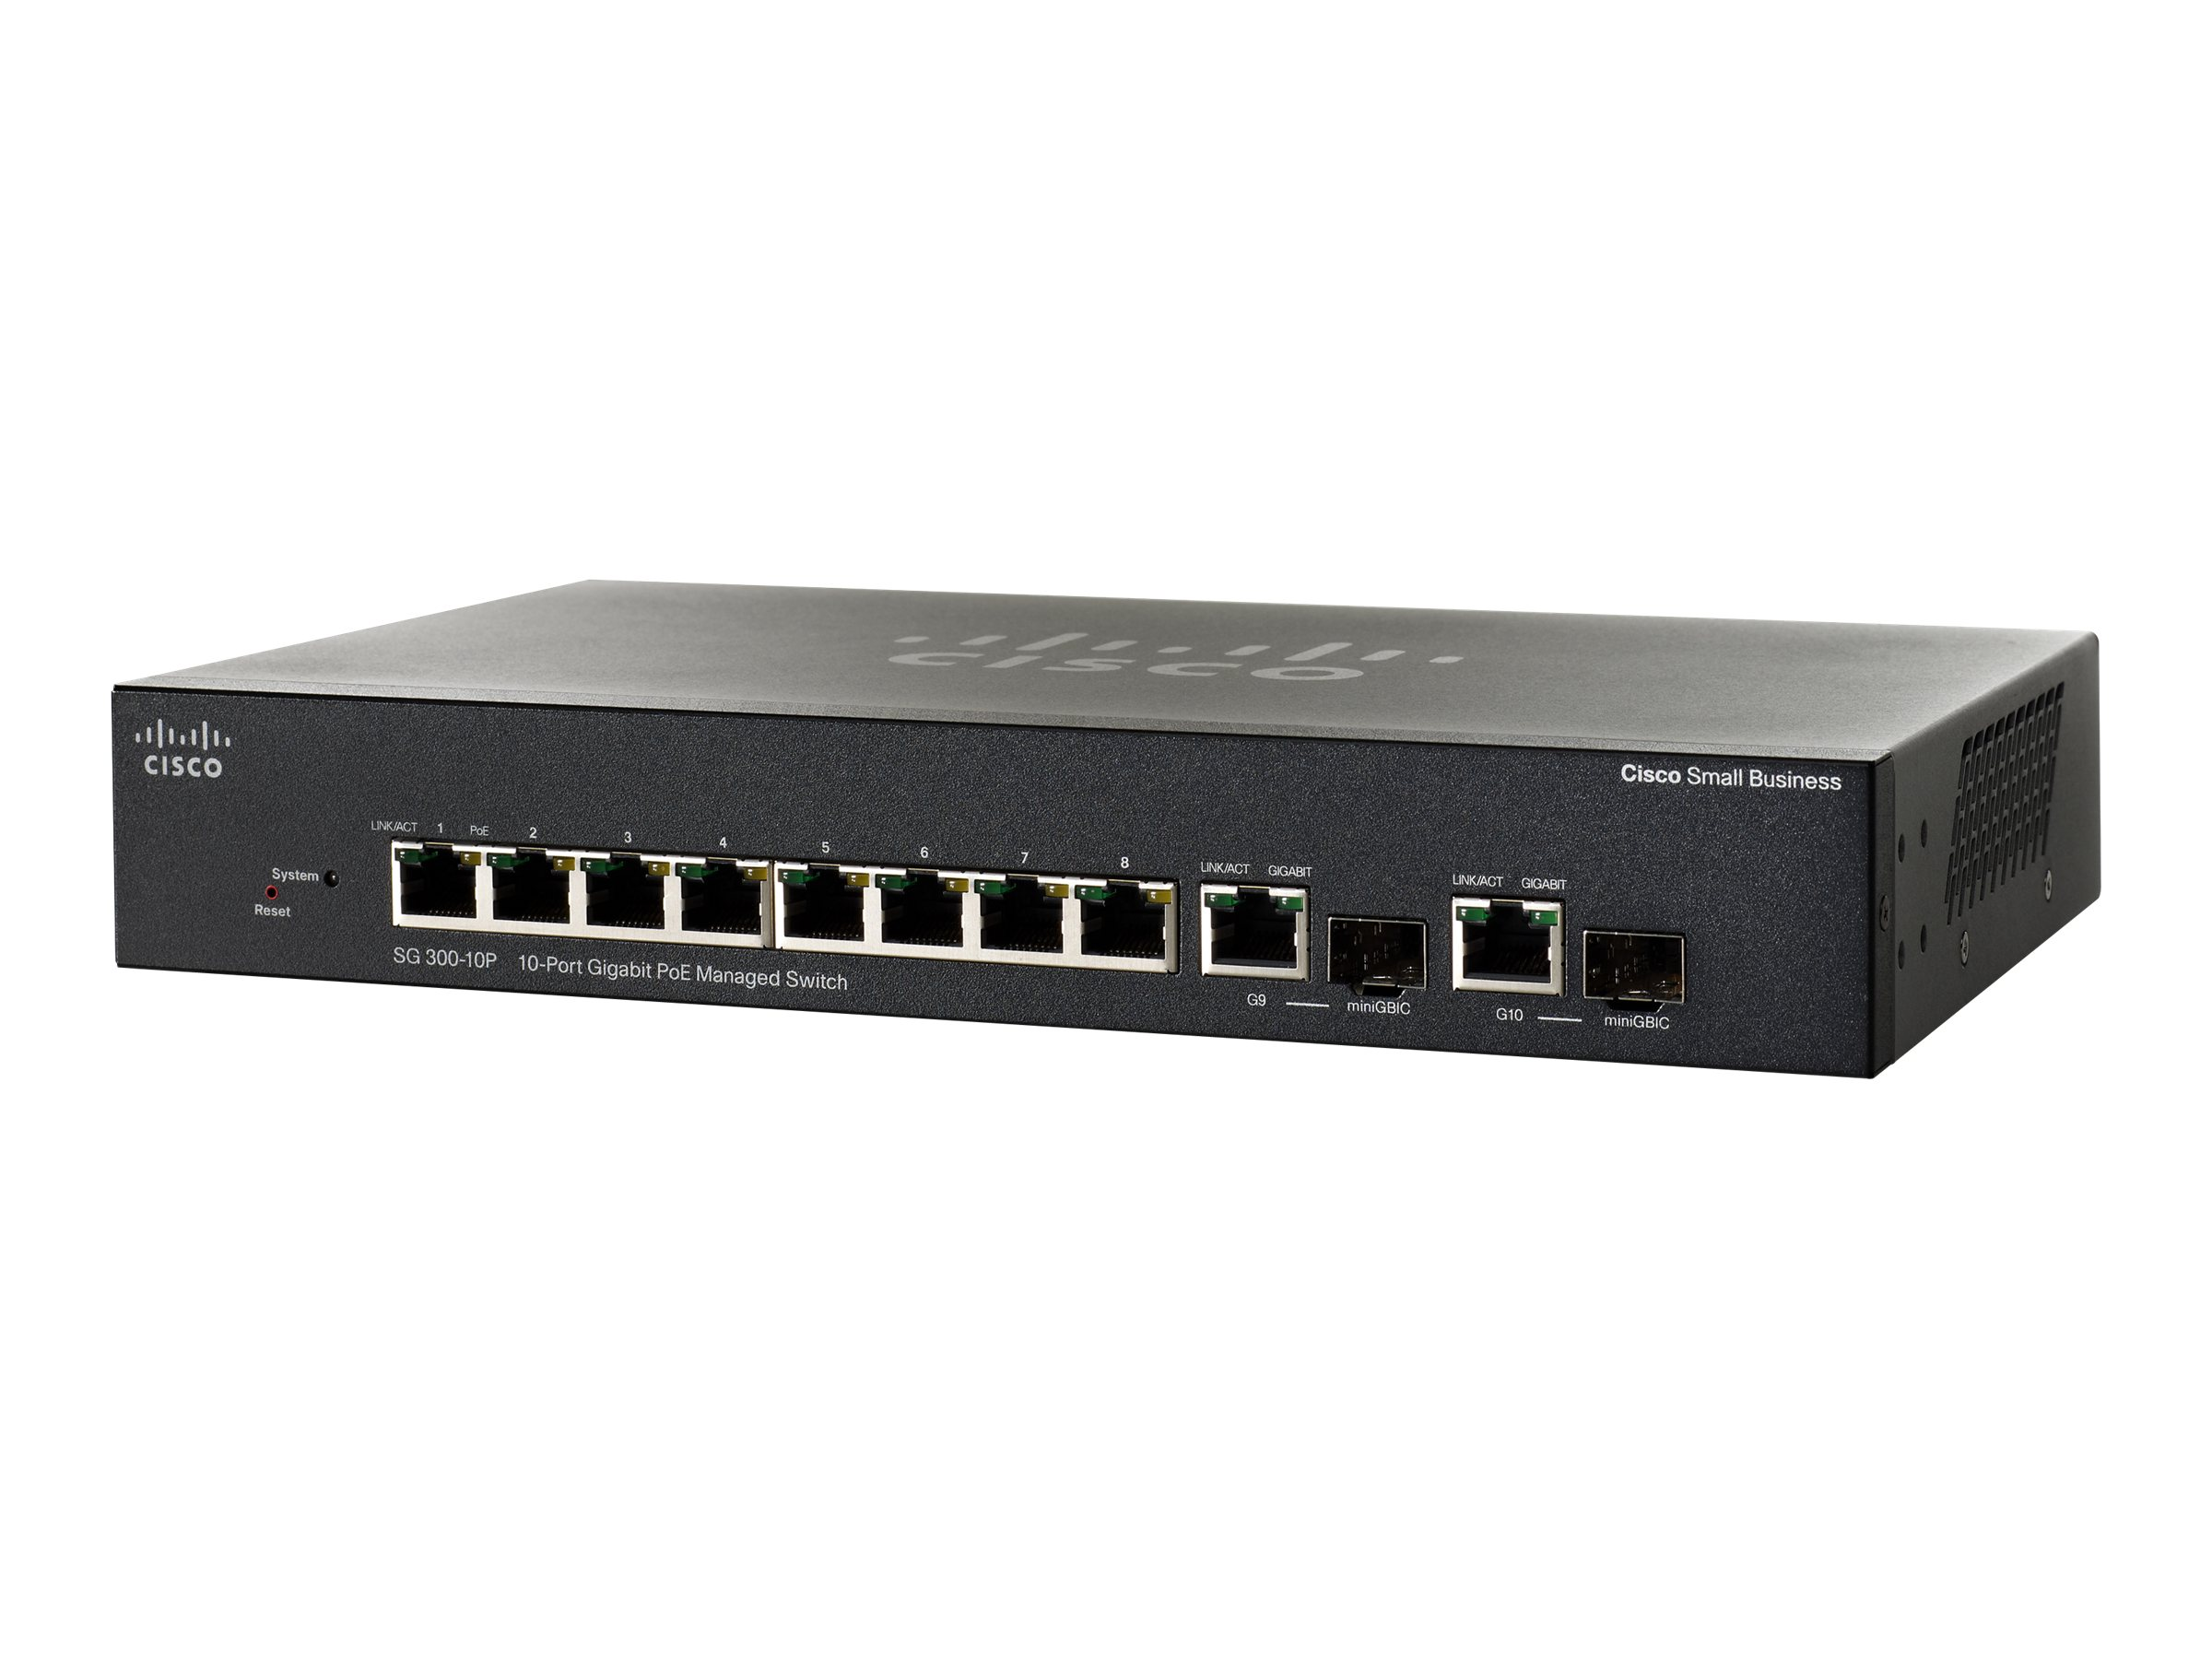 Cisco Small Business SG300-10 - Switch - L3 - verwaltet - 8 x 10/100/1000 + 2 x Kombi-Gigabit-SFP - Desktop